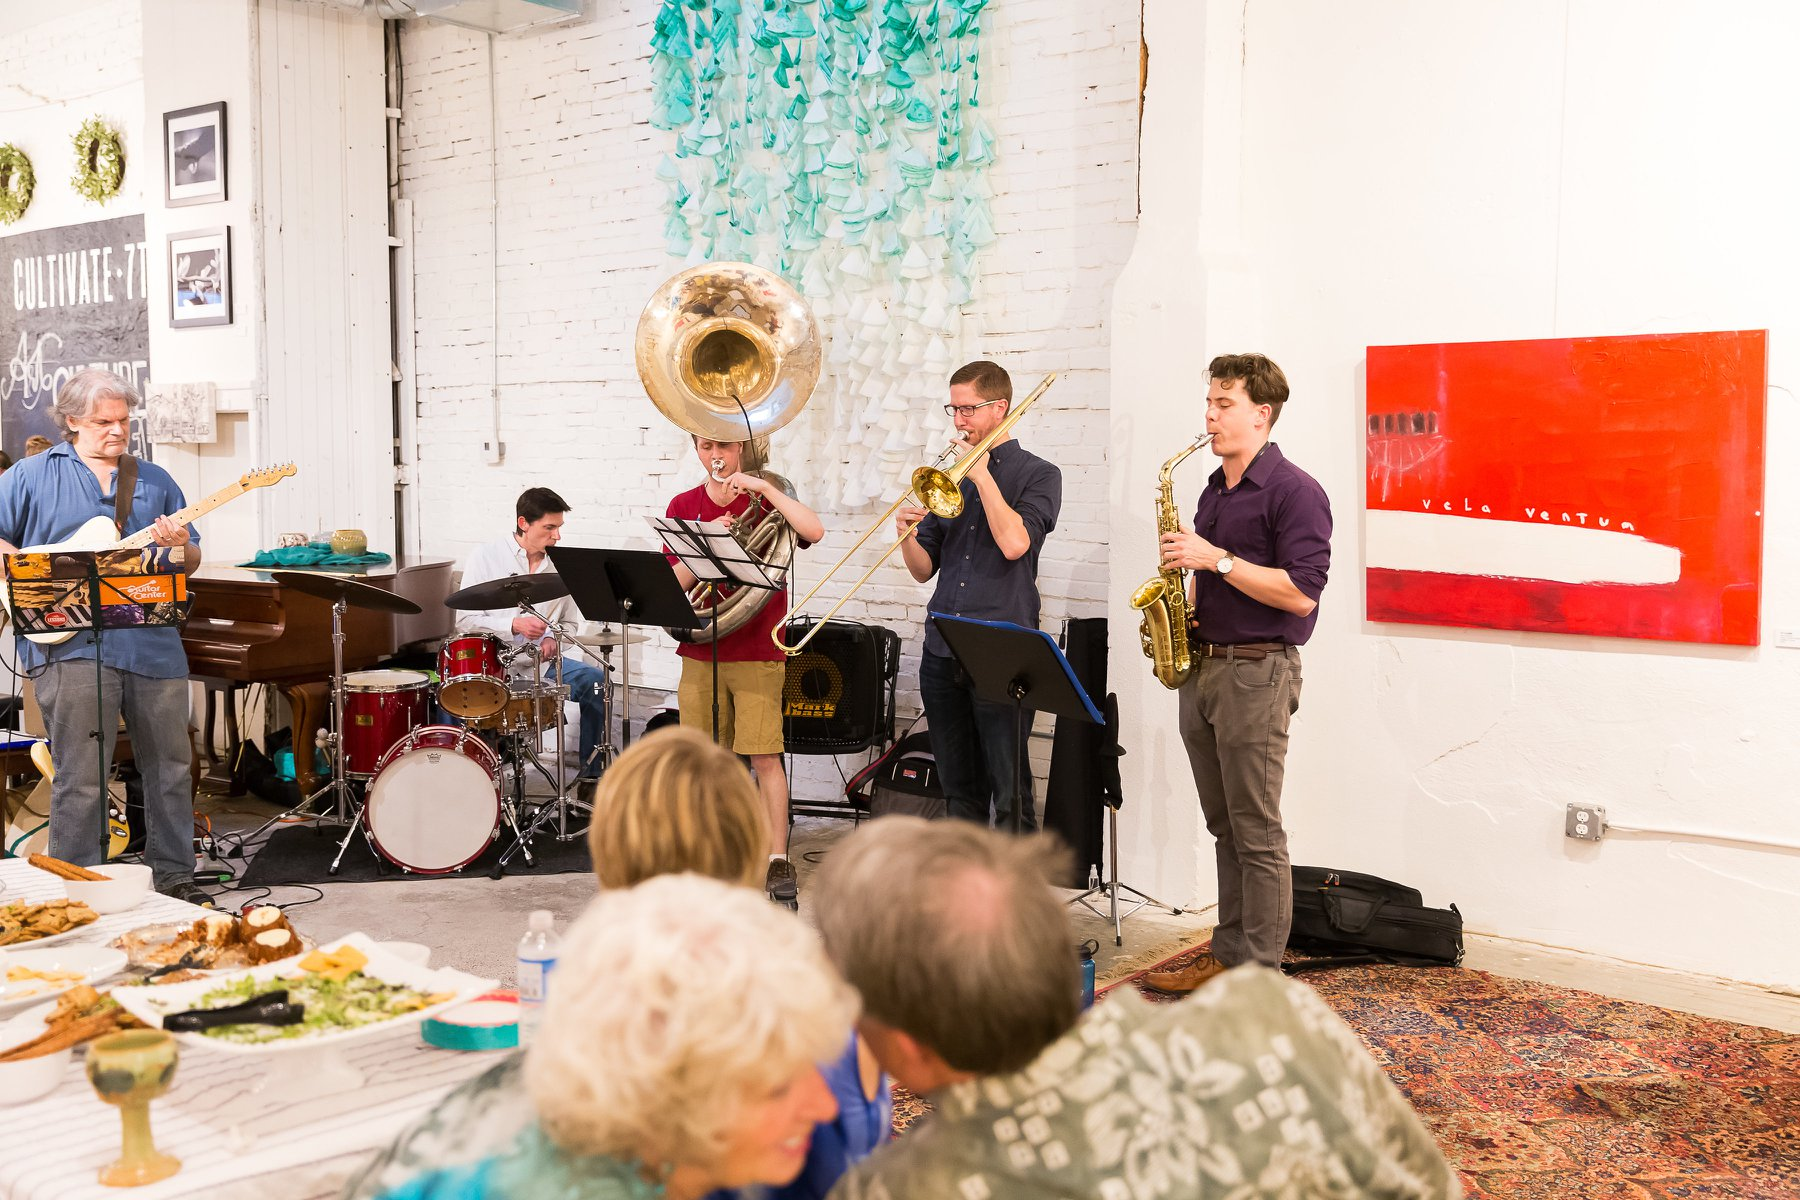 Chuck Jennings (far left) plays alongside other local artist at Cultivate 7twelve's monthly jam sessions.  (photo by Cultivate 7twelve)